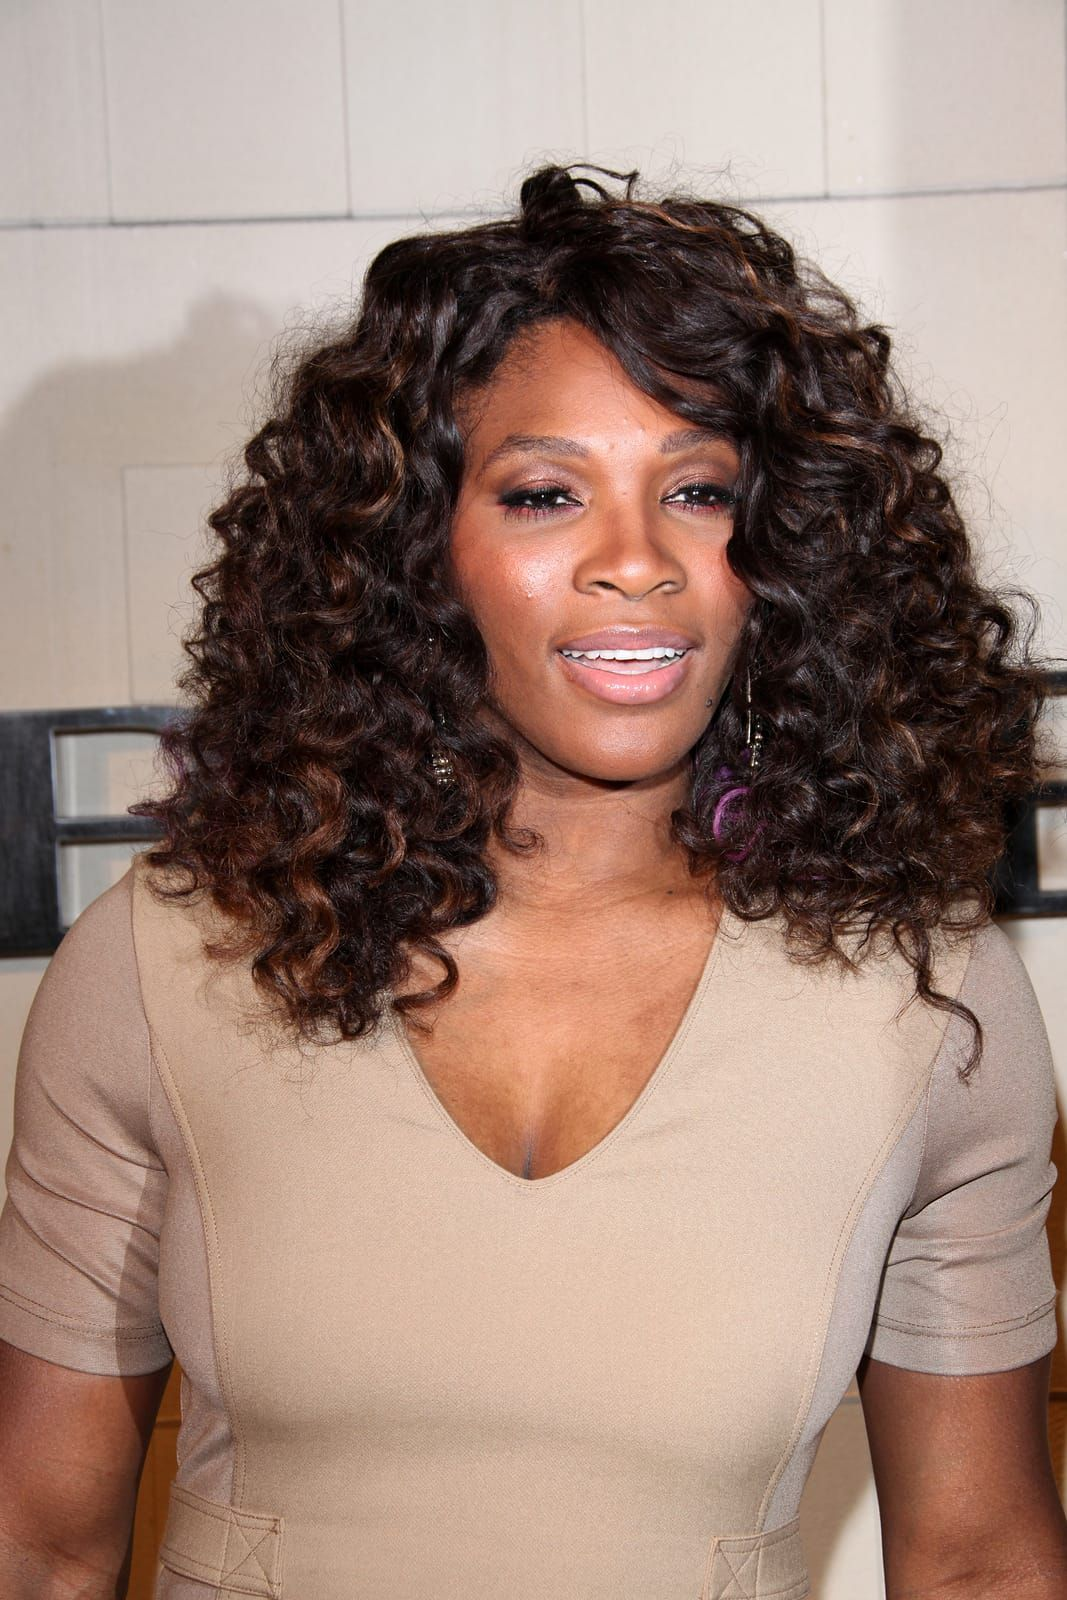 Serena Williams the tennis superstar who won the Australian Open while pregnant  Serena Williams the tennis superstar who won the Australian Open while pregnant has given...